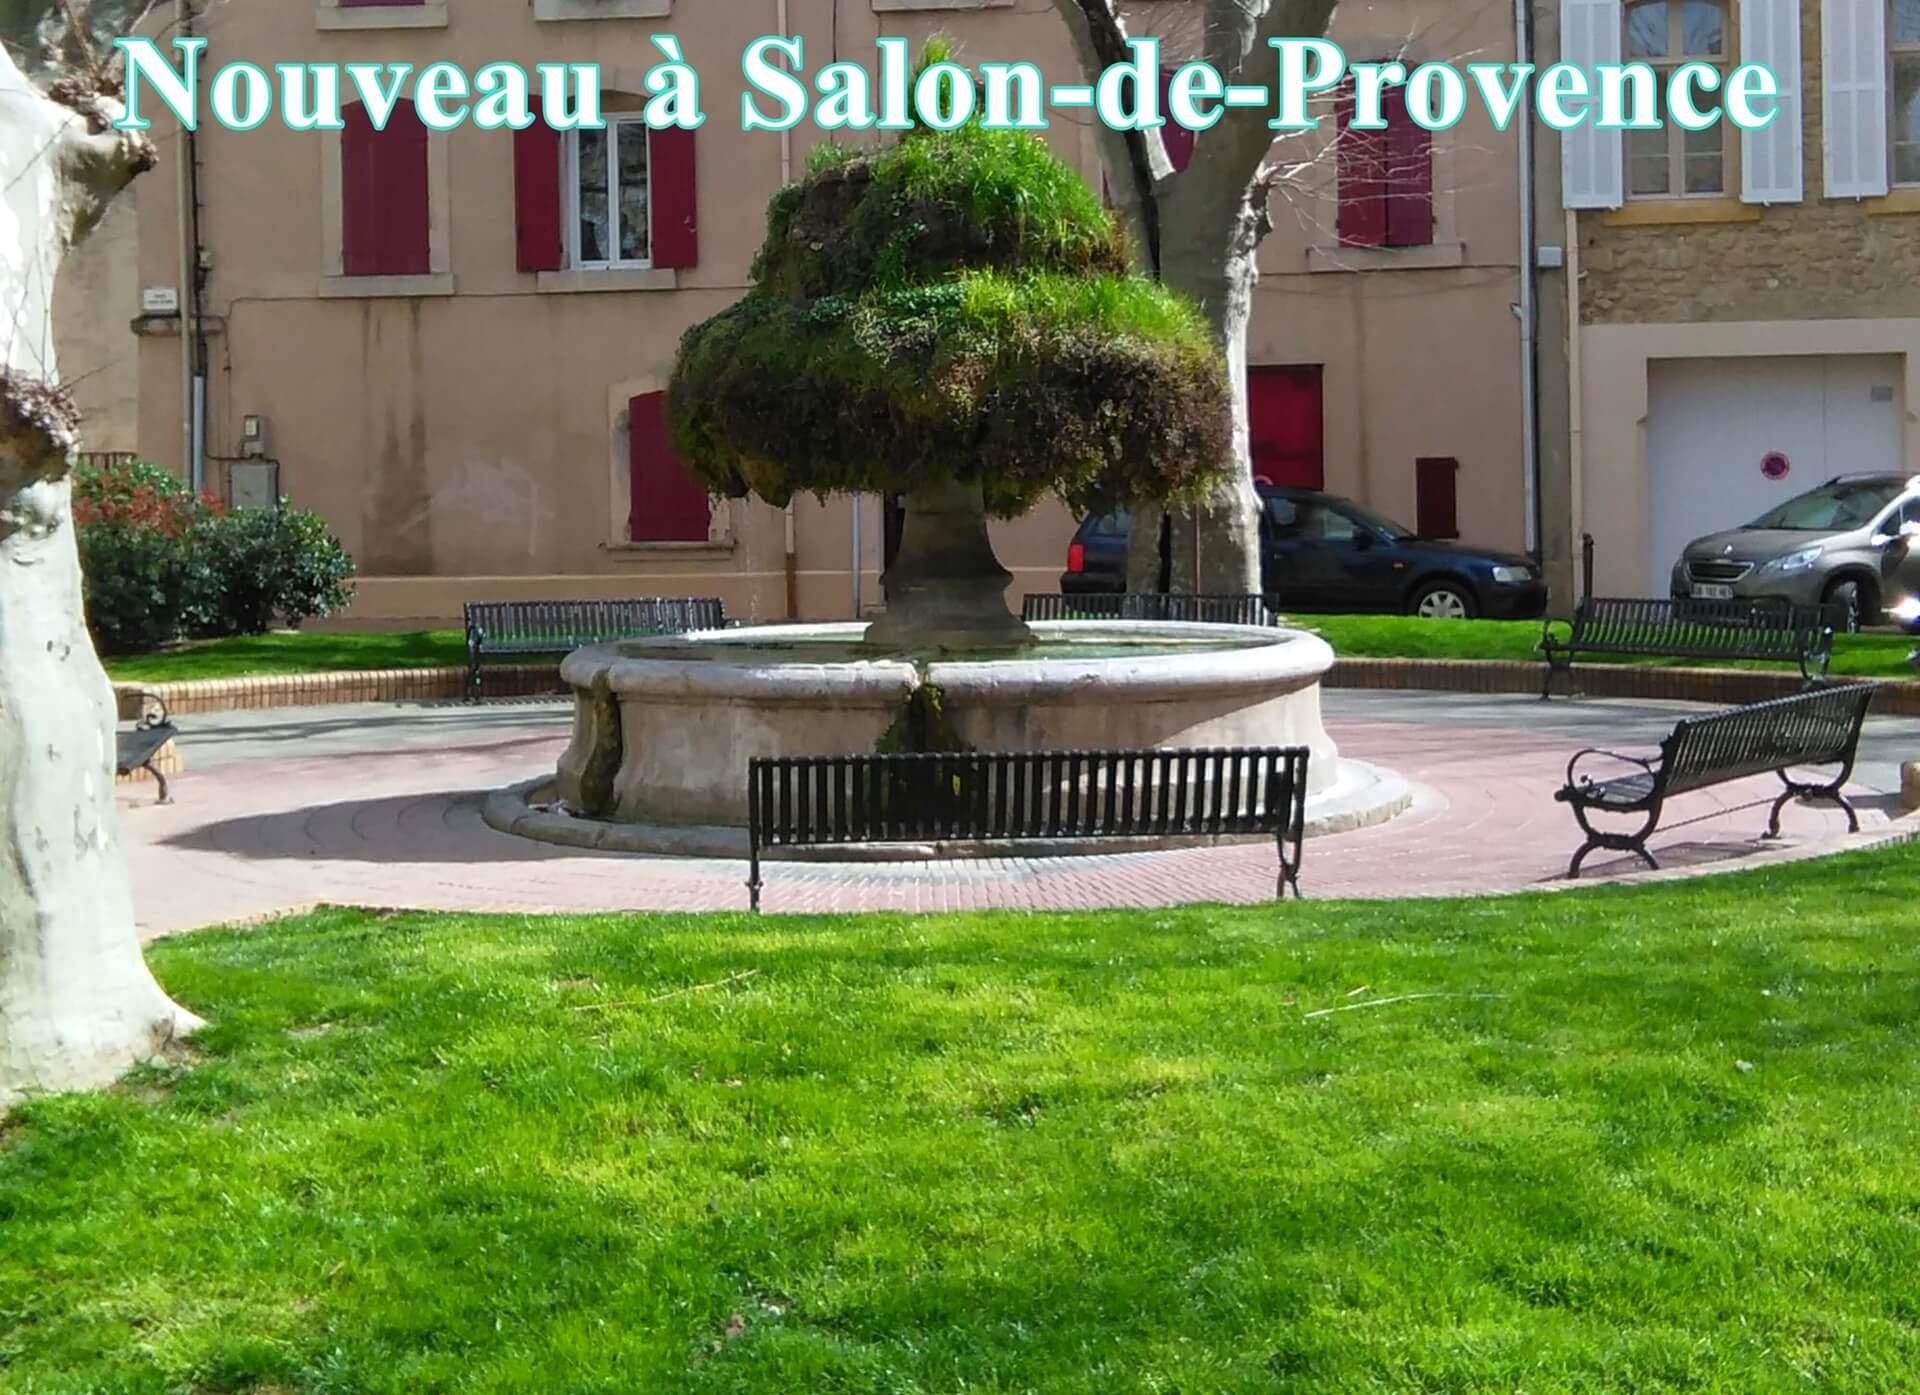 Nouveau salon de provence for Bibliotheque salon de provence